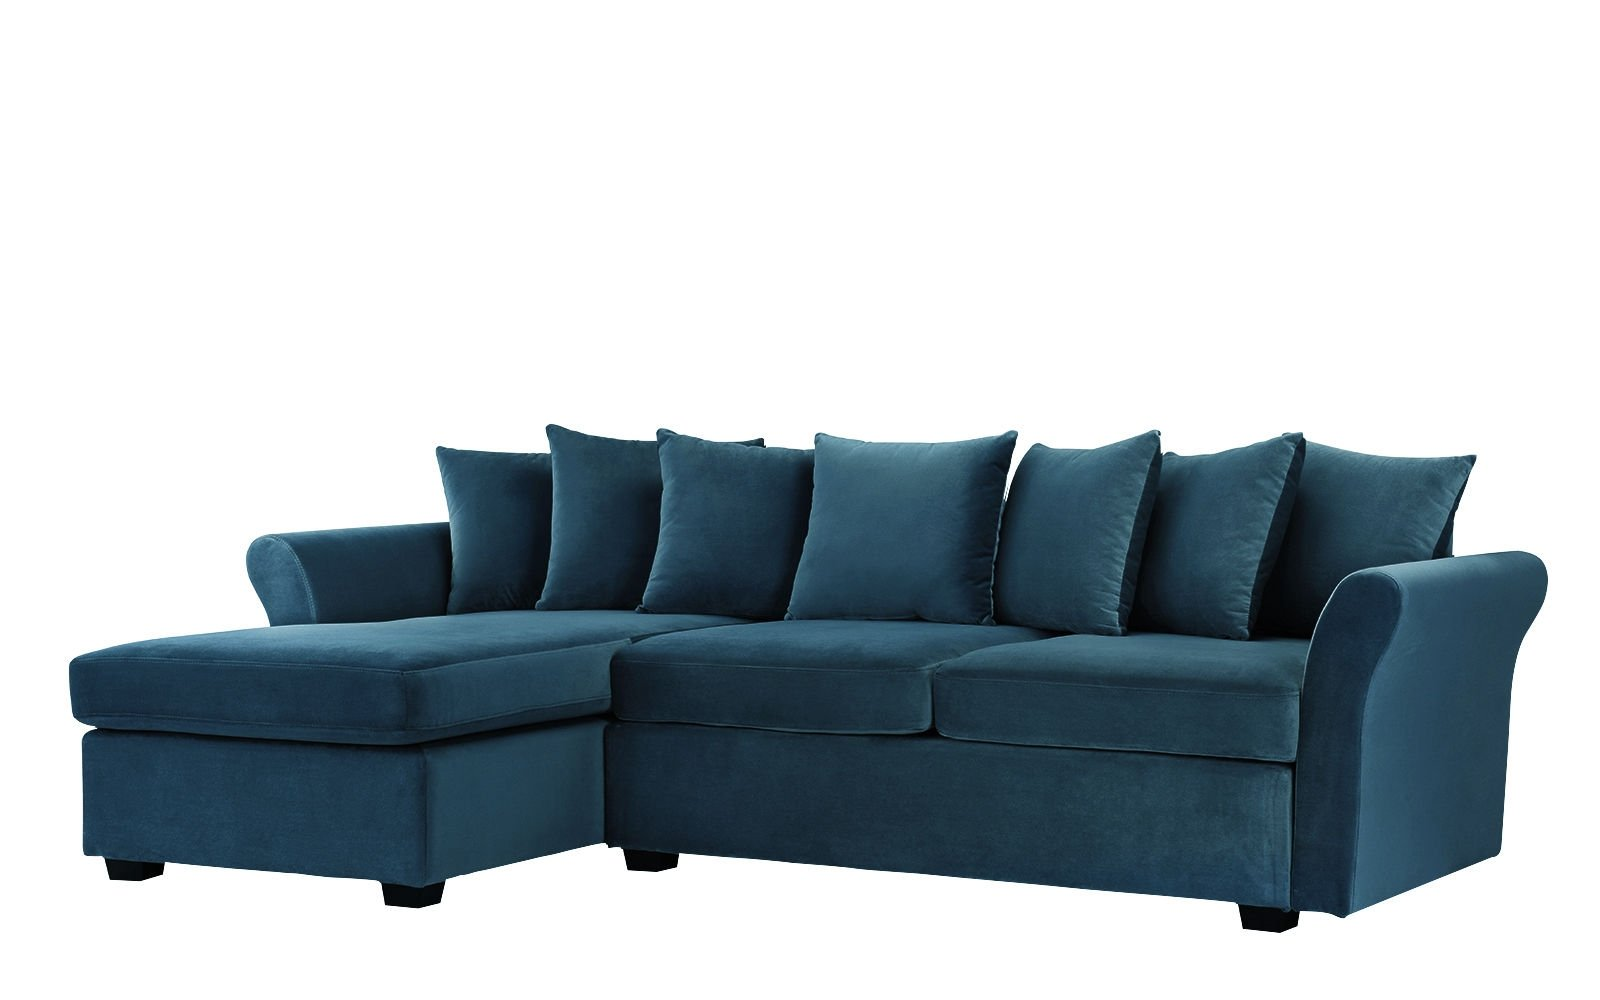 Modern Velvet Sectional Sofa Large L Shape Couch W Chaise